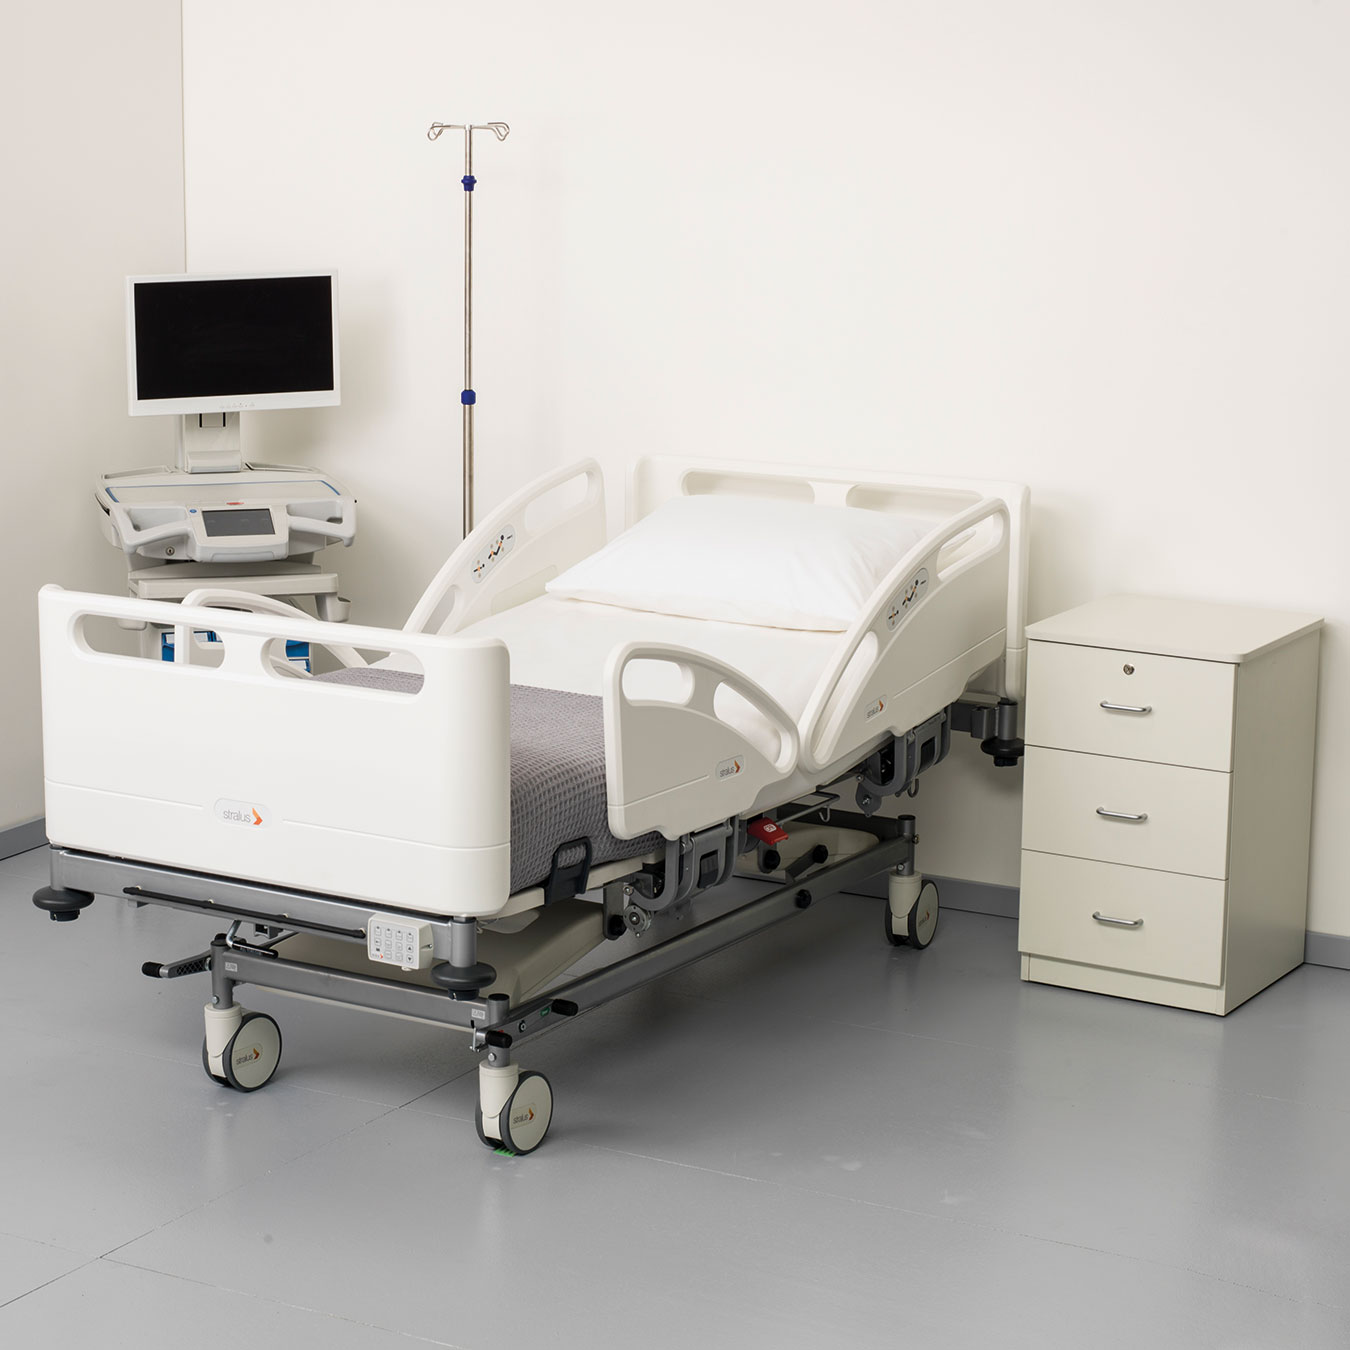 STRWARDC230-Stralus-C230-Acute-Care-Bed-Image-File-3_v1